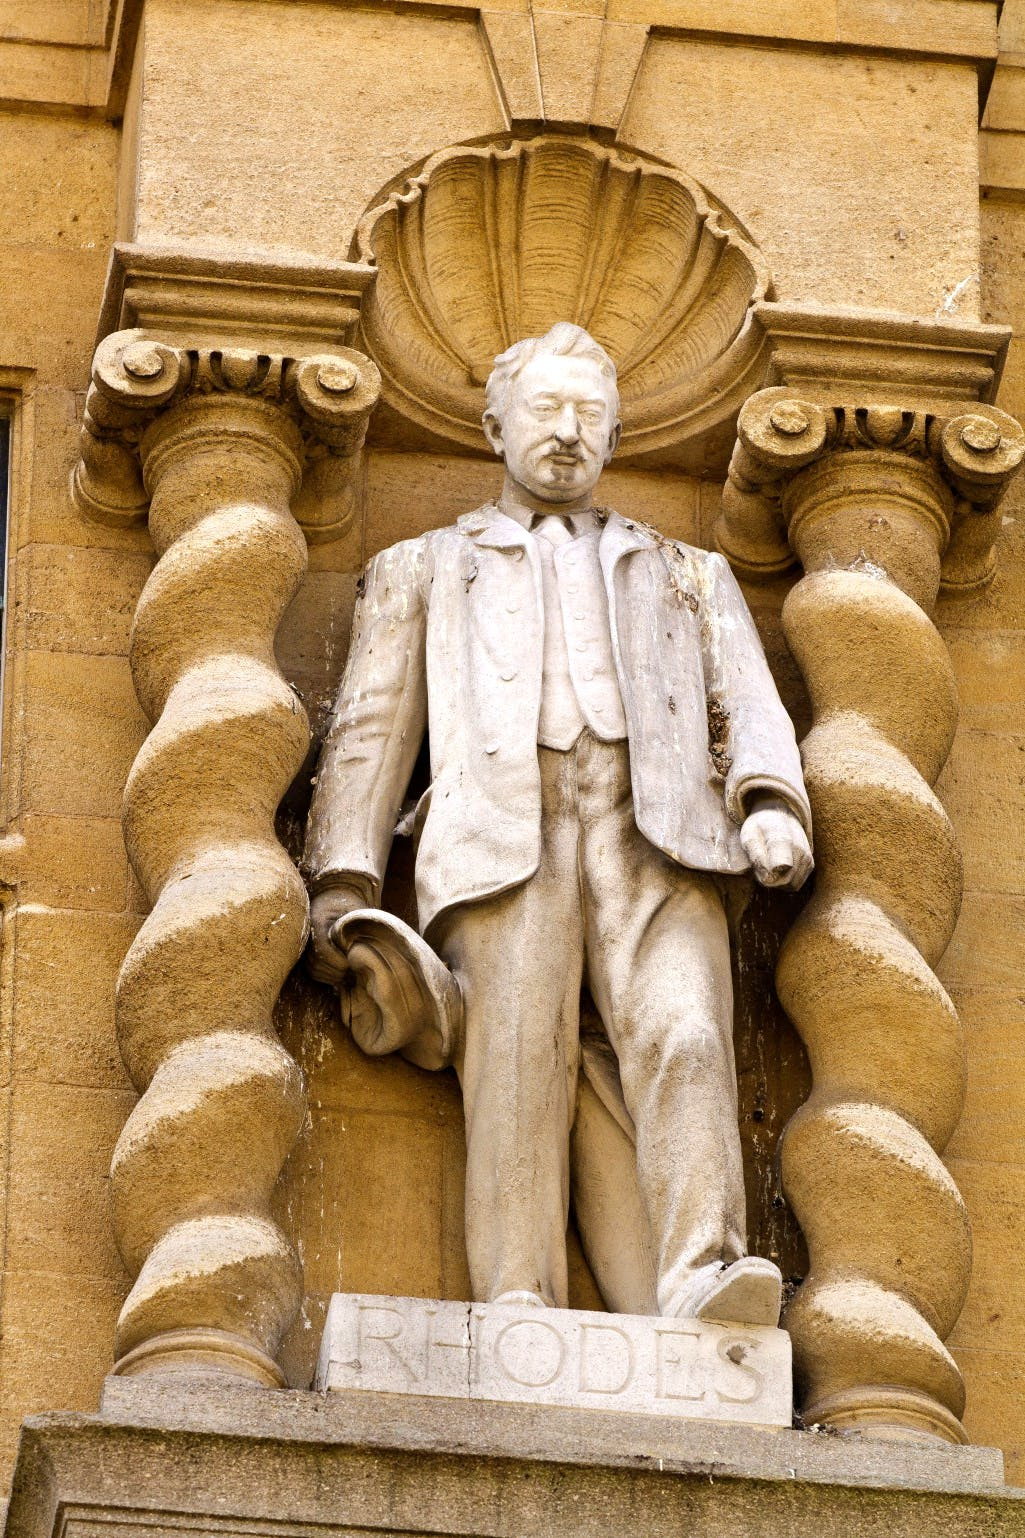 Statue of Cecil Rhodes on the façade of Oriel College, Oxford on the High Street, built in 1911